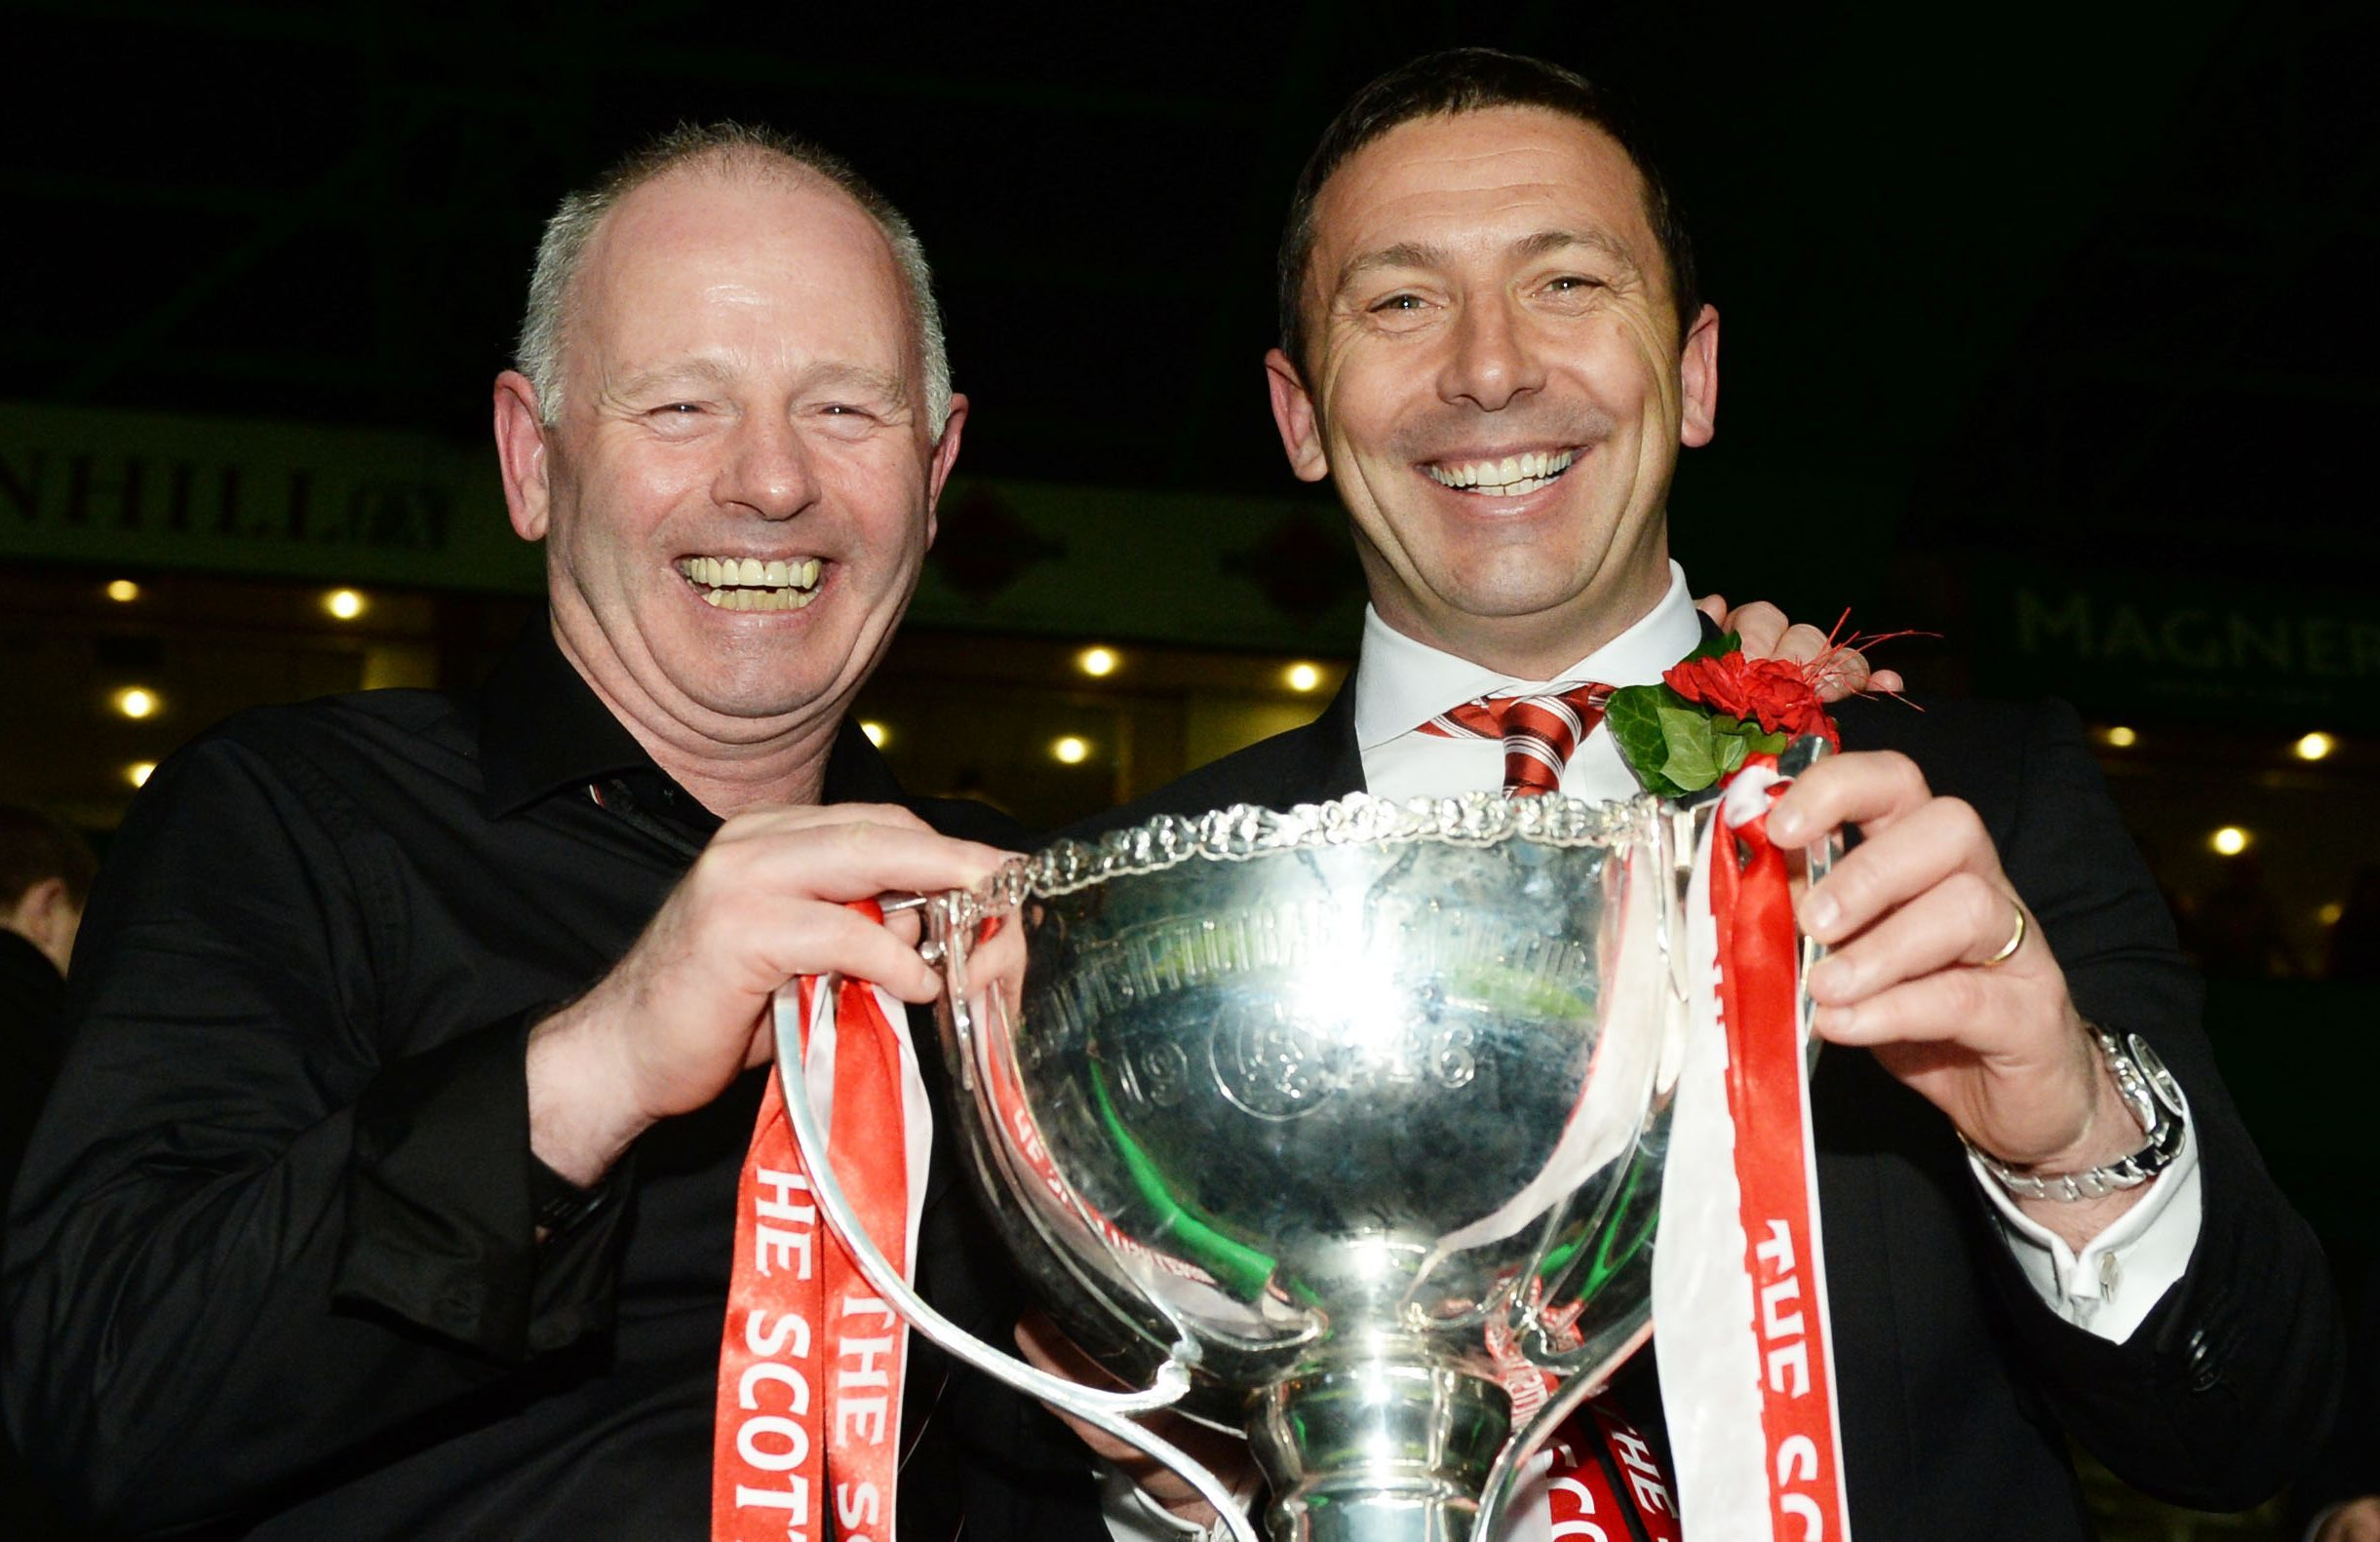 Derek McInnes, right, and chairman Stewart Milne with the League Cup in March 2014.